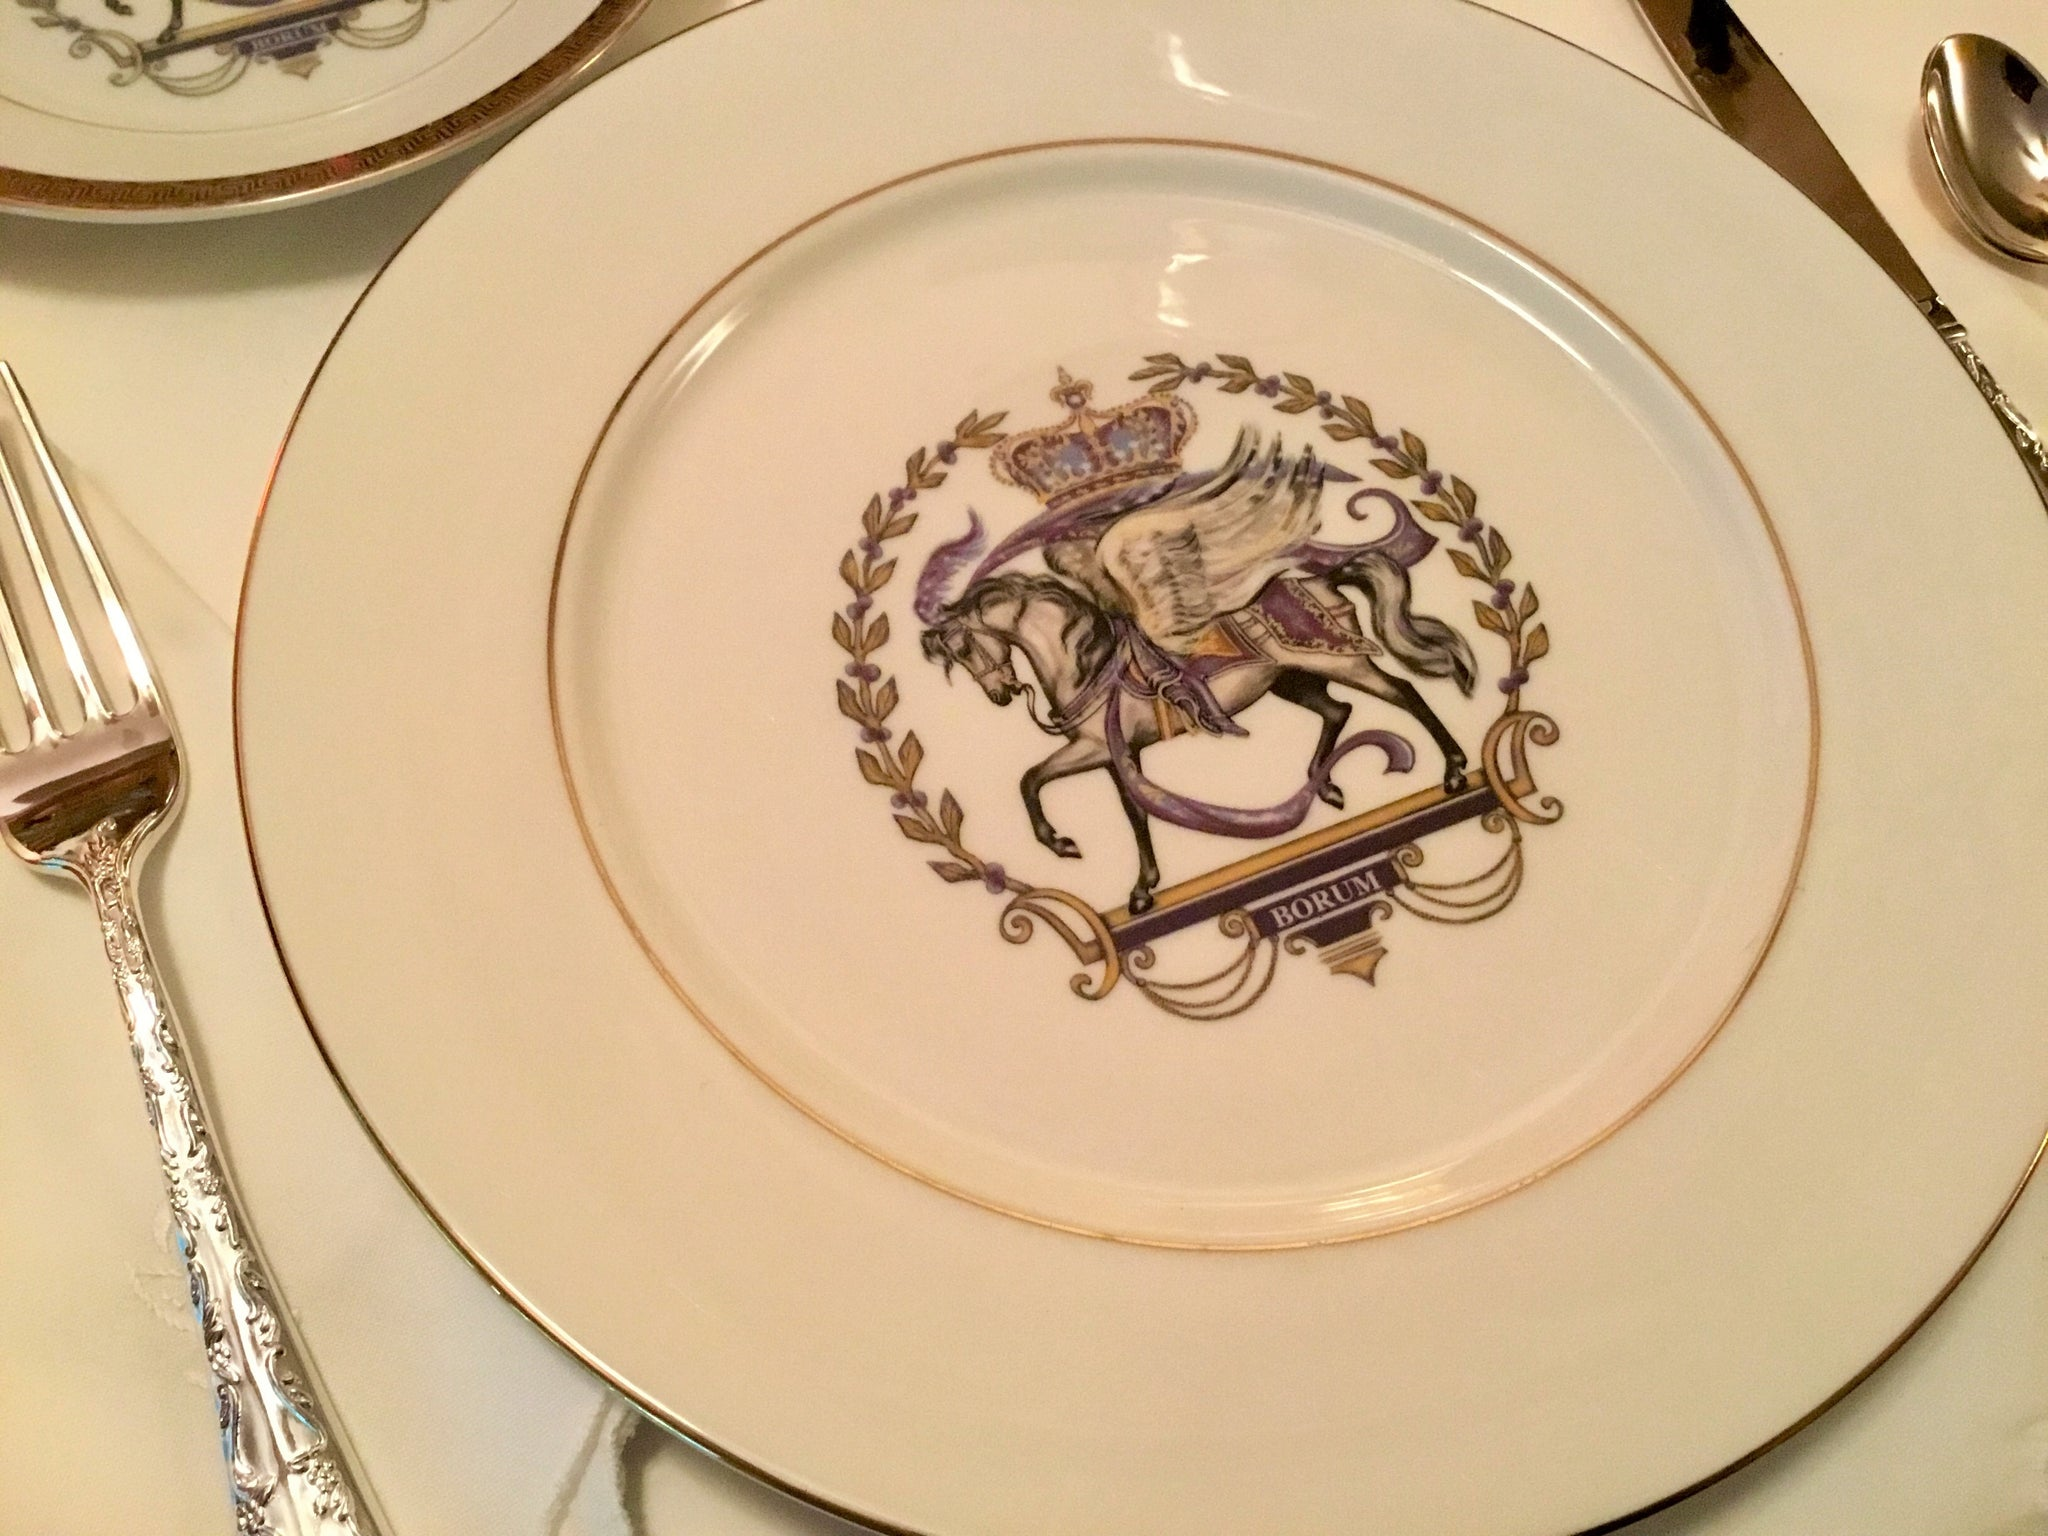 Royal Pegasus horse dinner plates, gently used